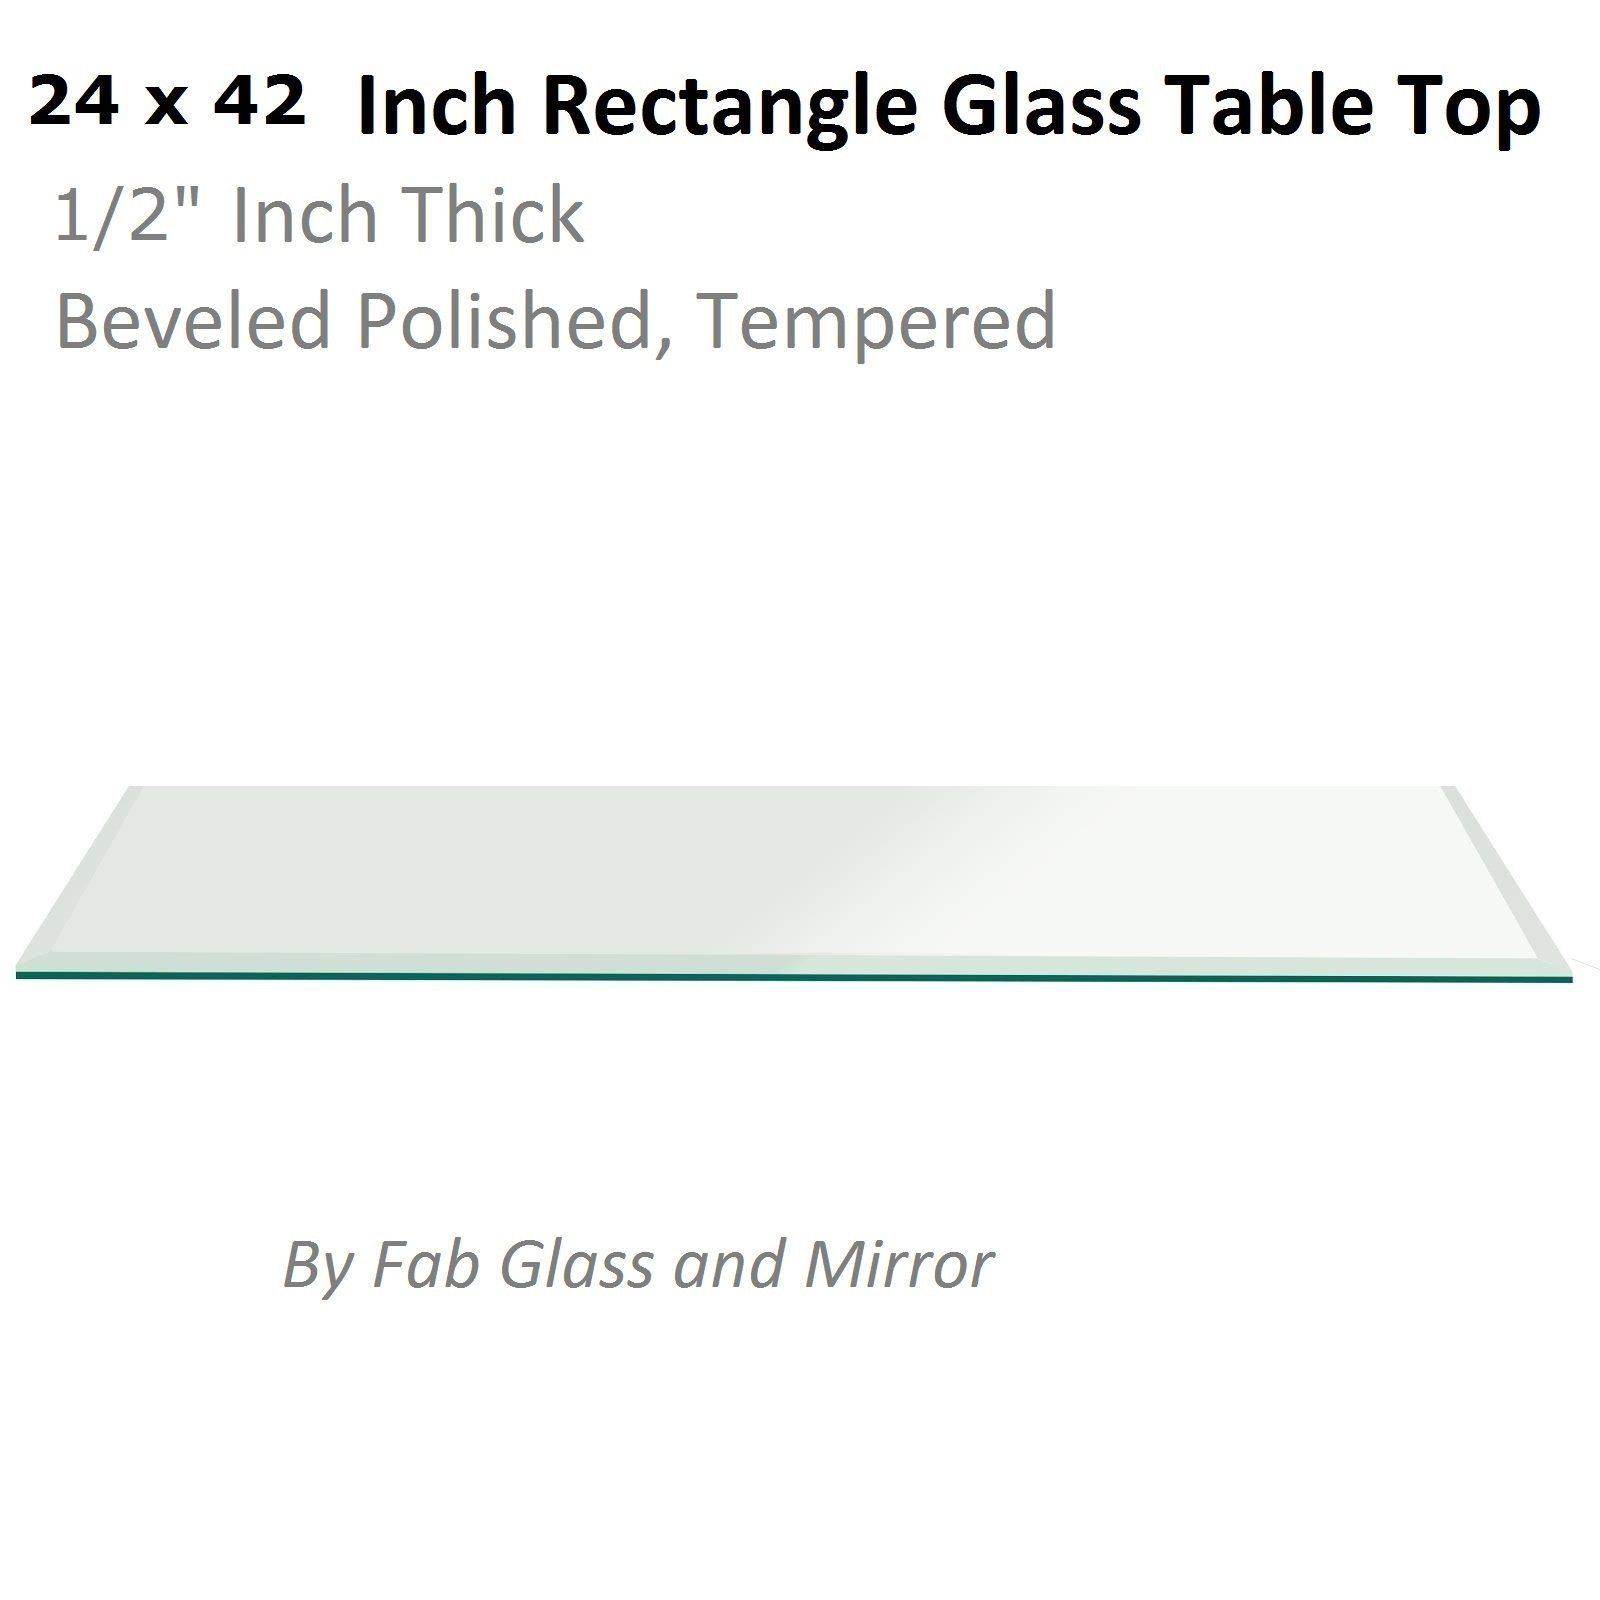 Fab Glass and Mirror 1/2'' Thick Beveled Tempered Radius Corners Rectangle Glass Table Top, 24'' X 42''